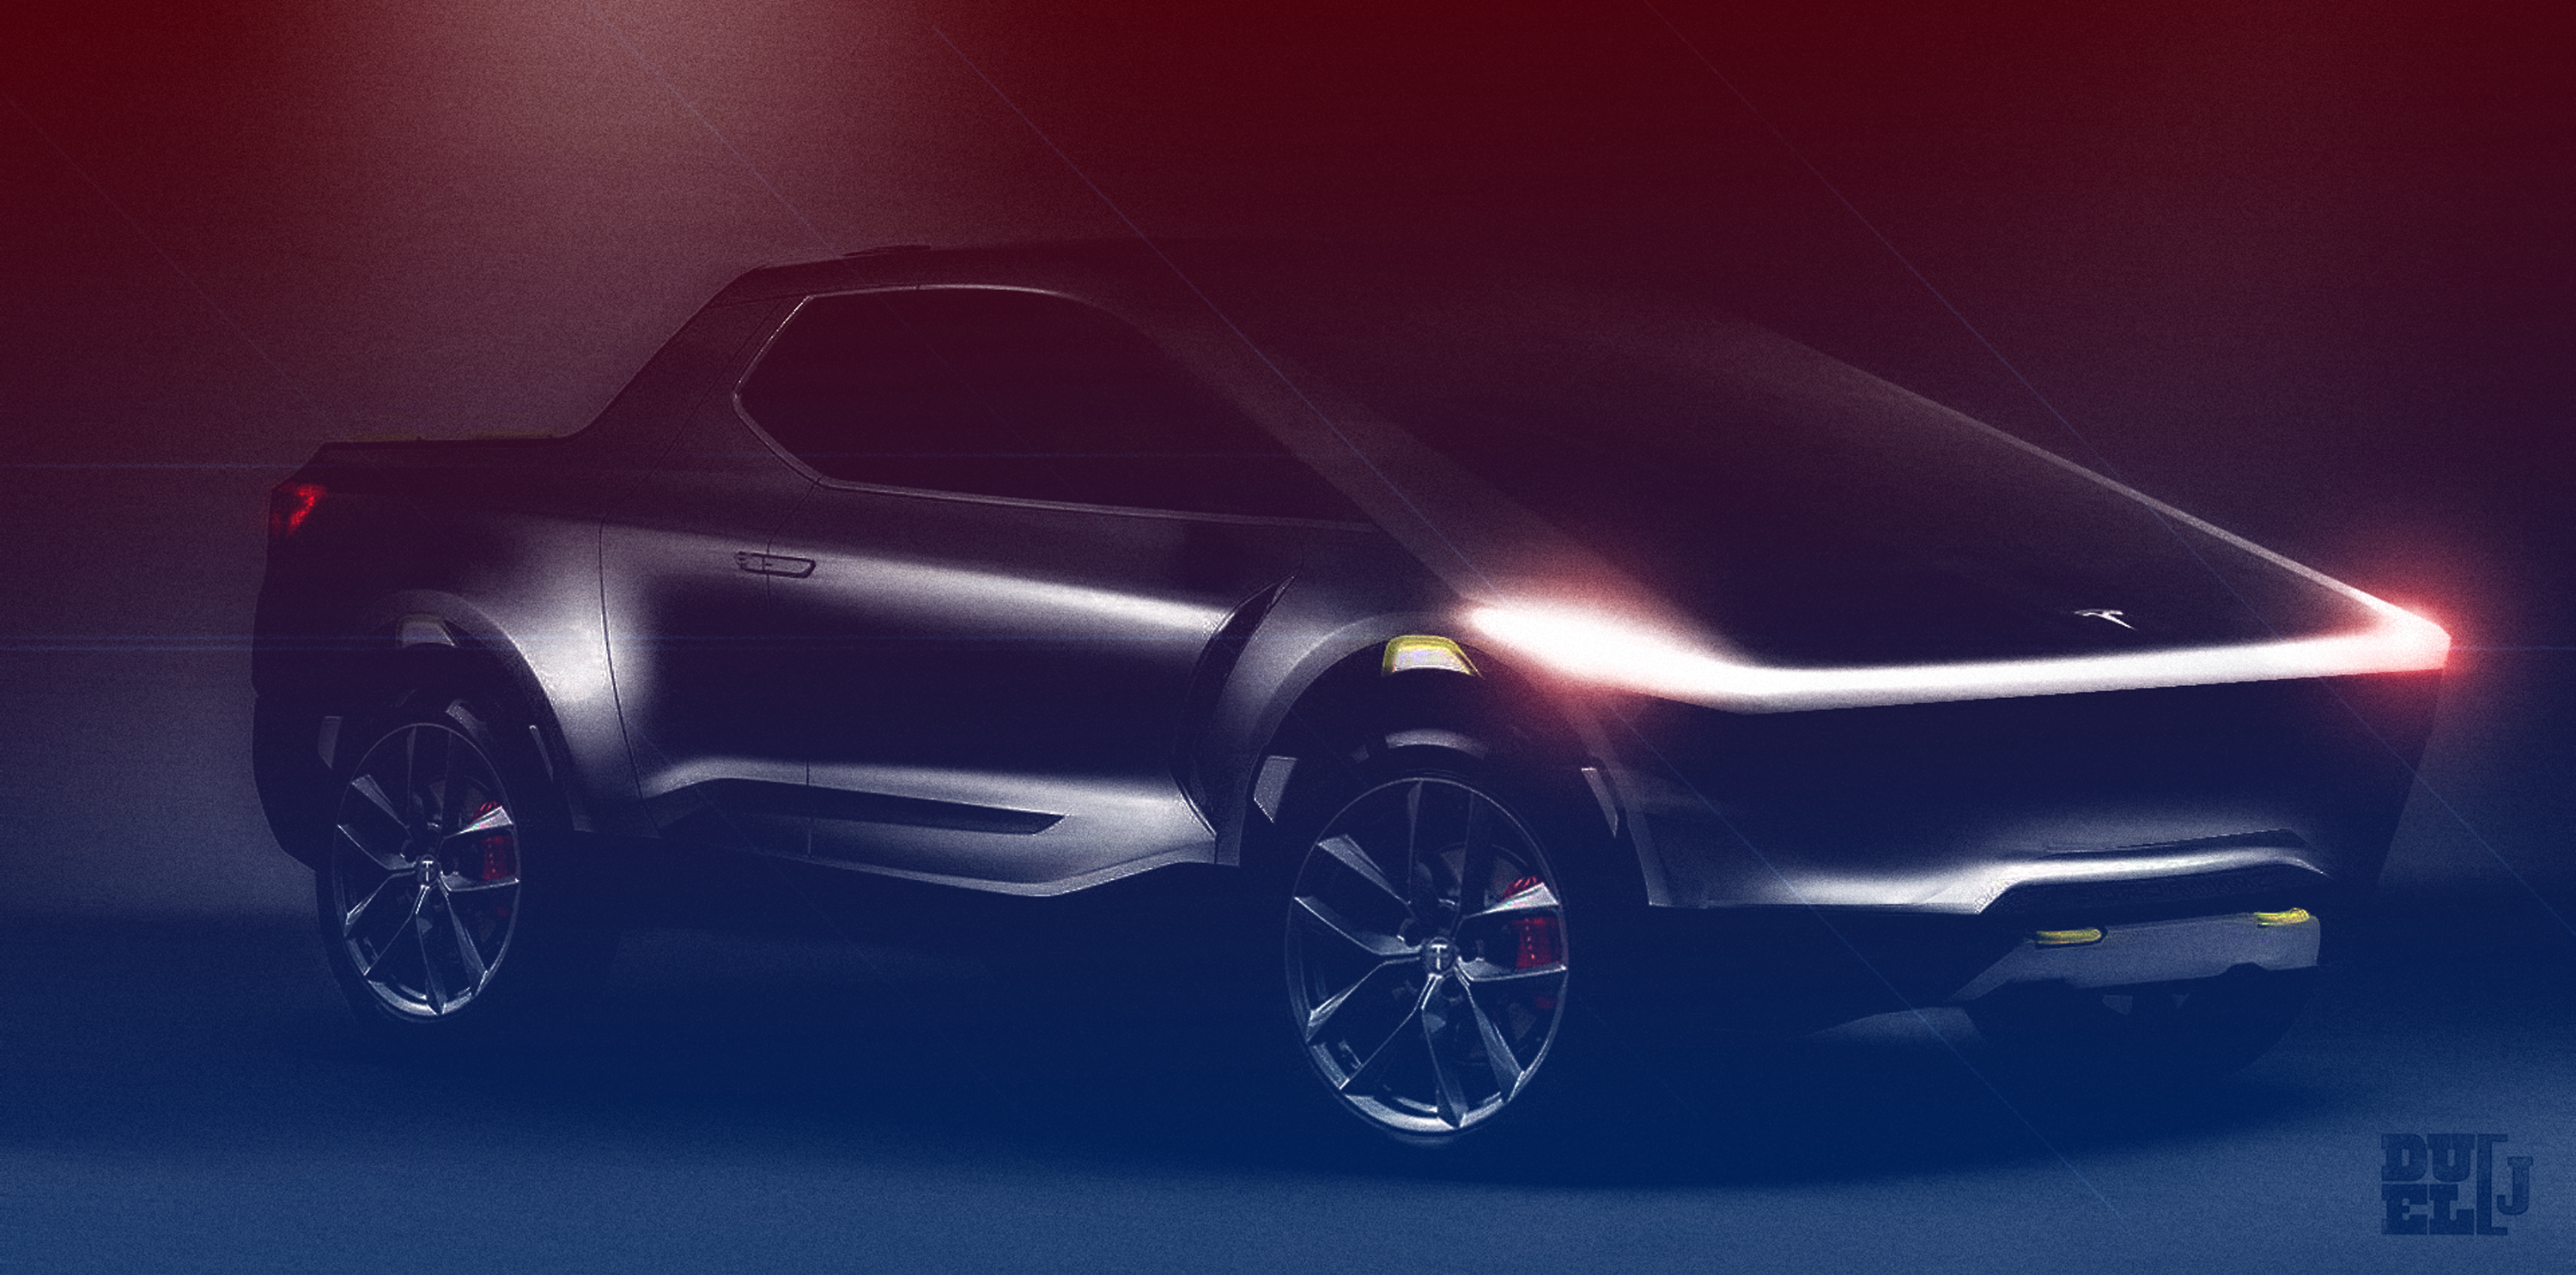 Tesla Pickup truck: could this be the mysterious 'Blade Runner' design? - Electrek